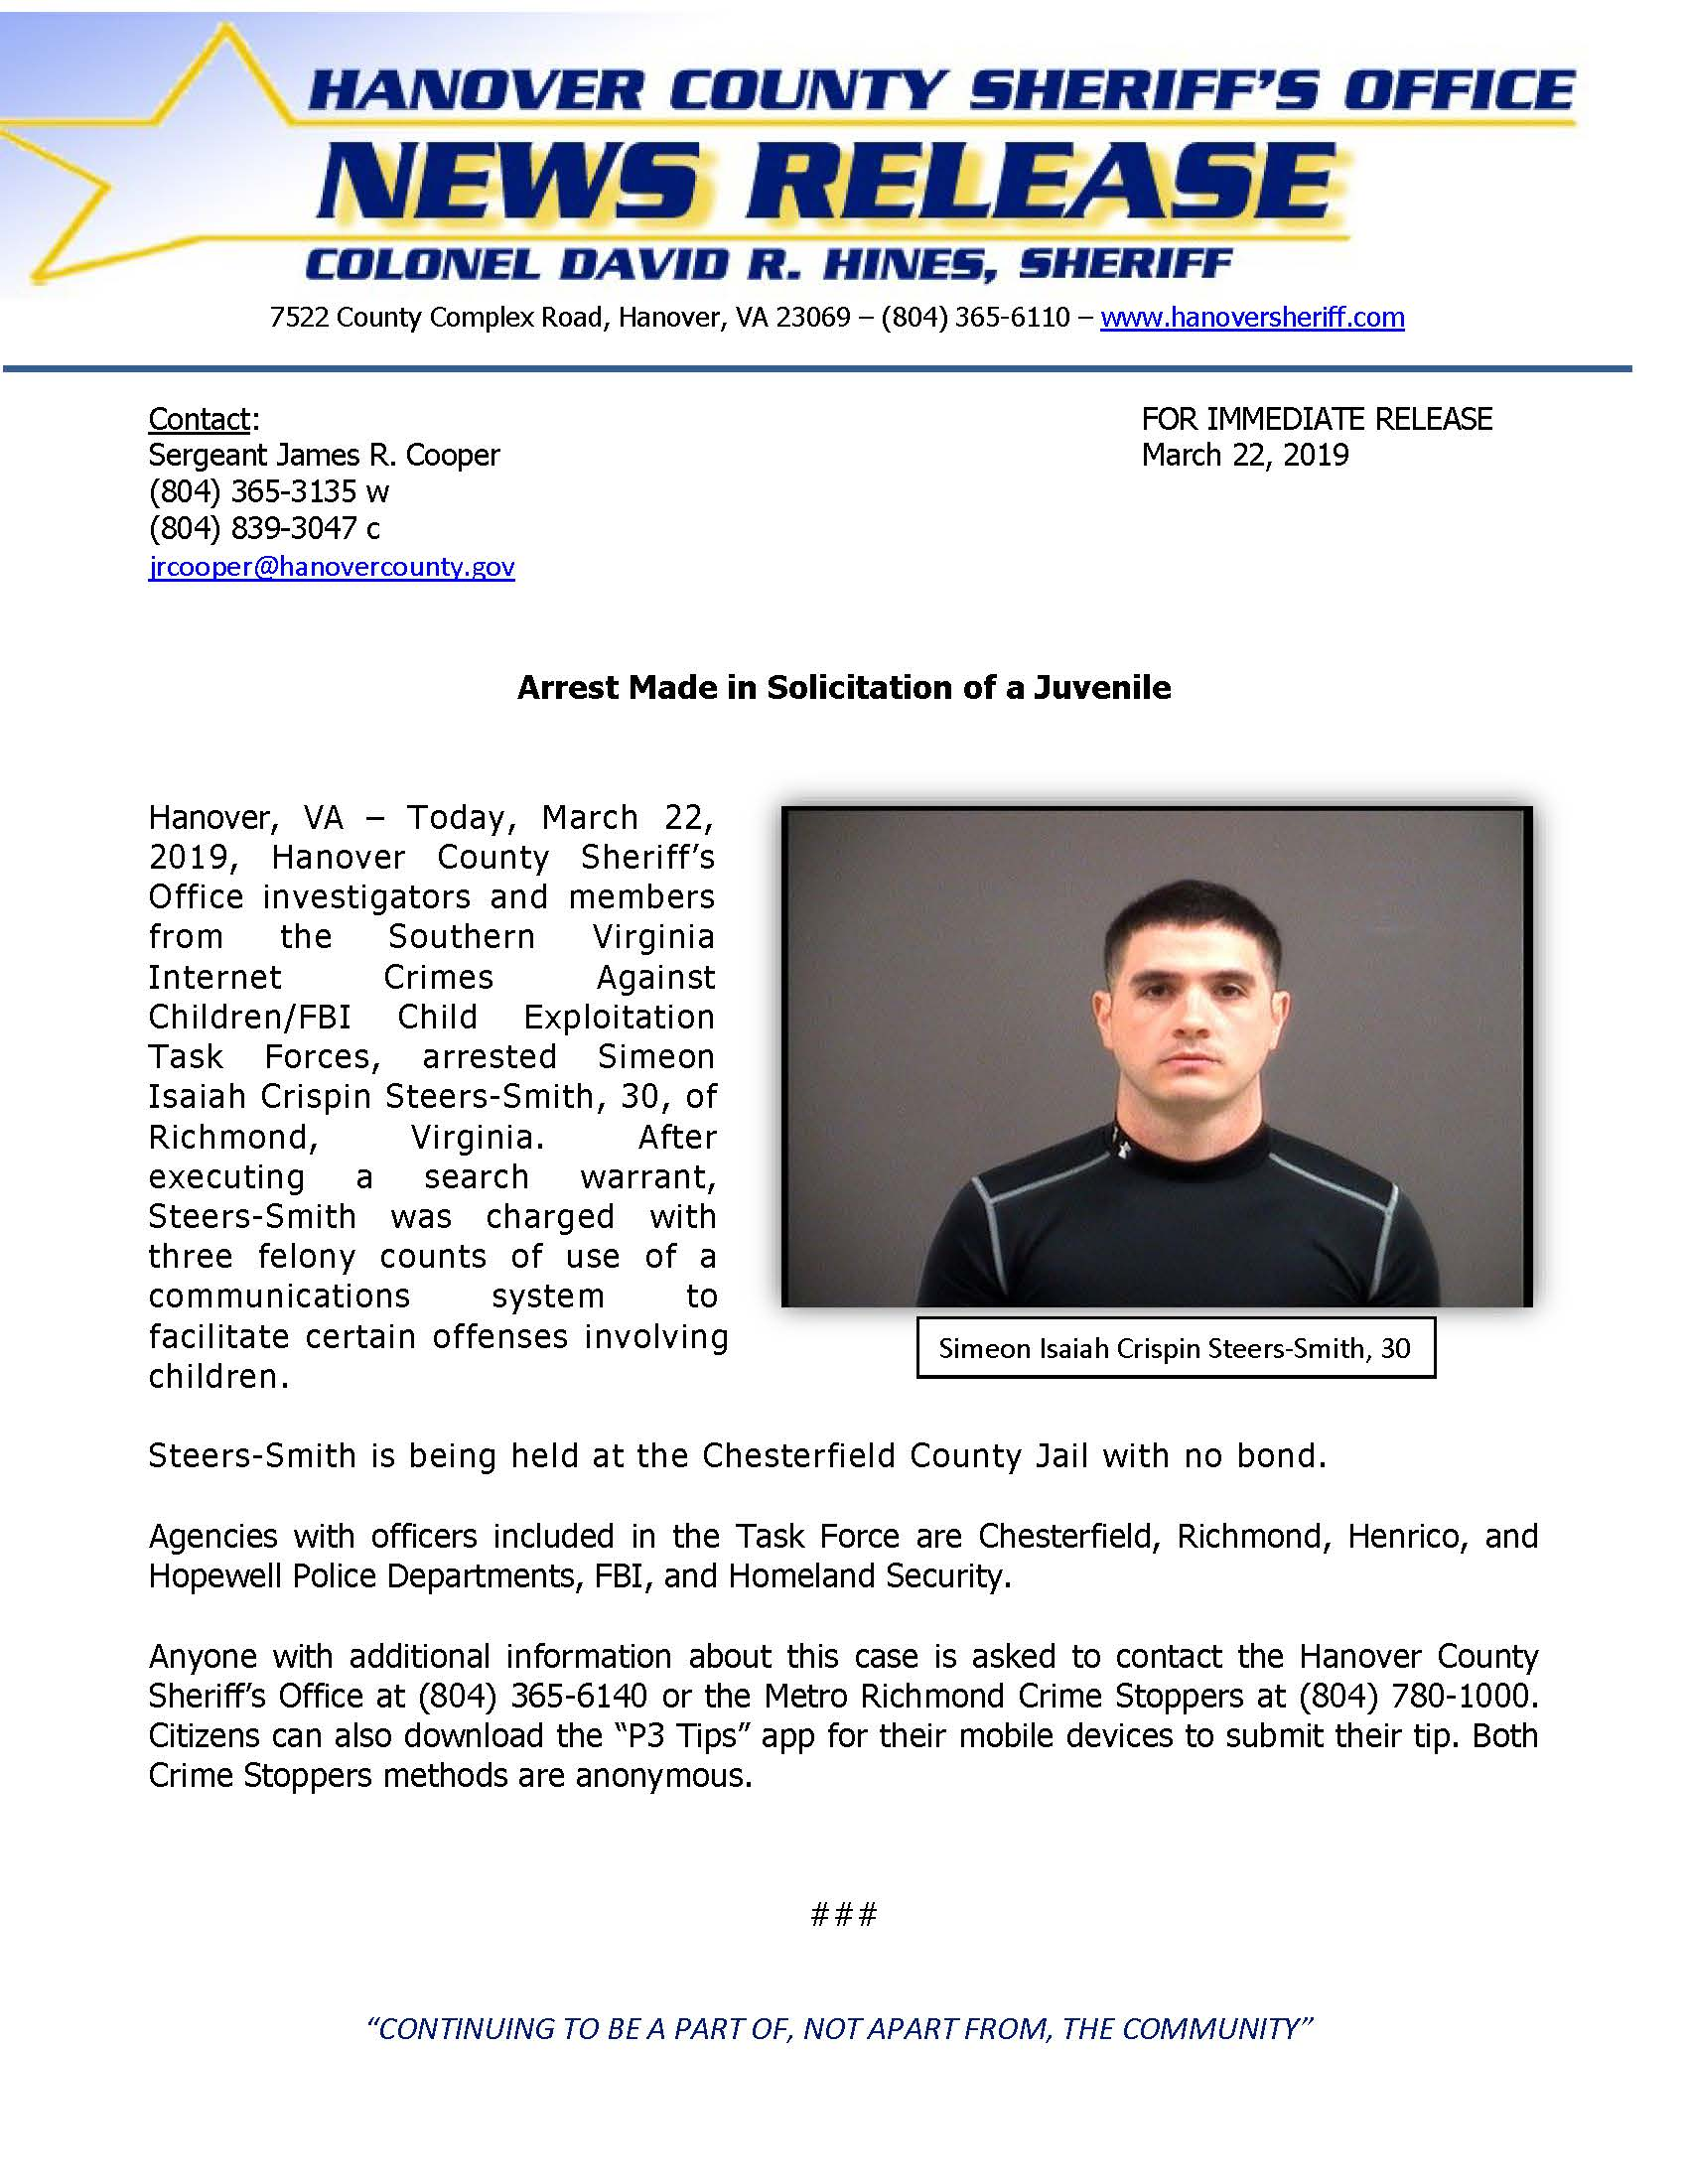 HCSO - Arrest Made in Solicitation of Juvenile - March 22, 2019